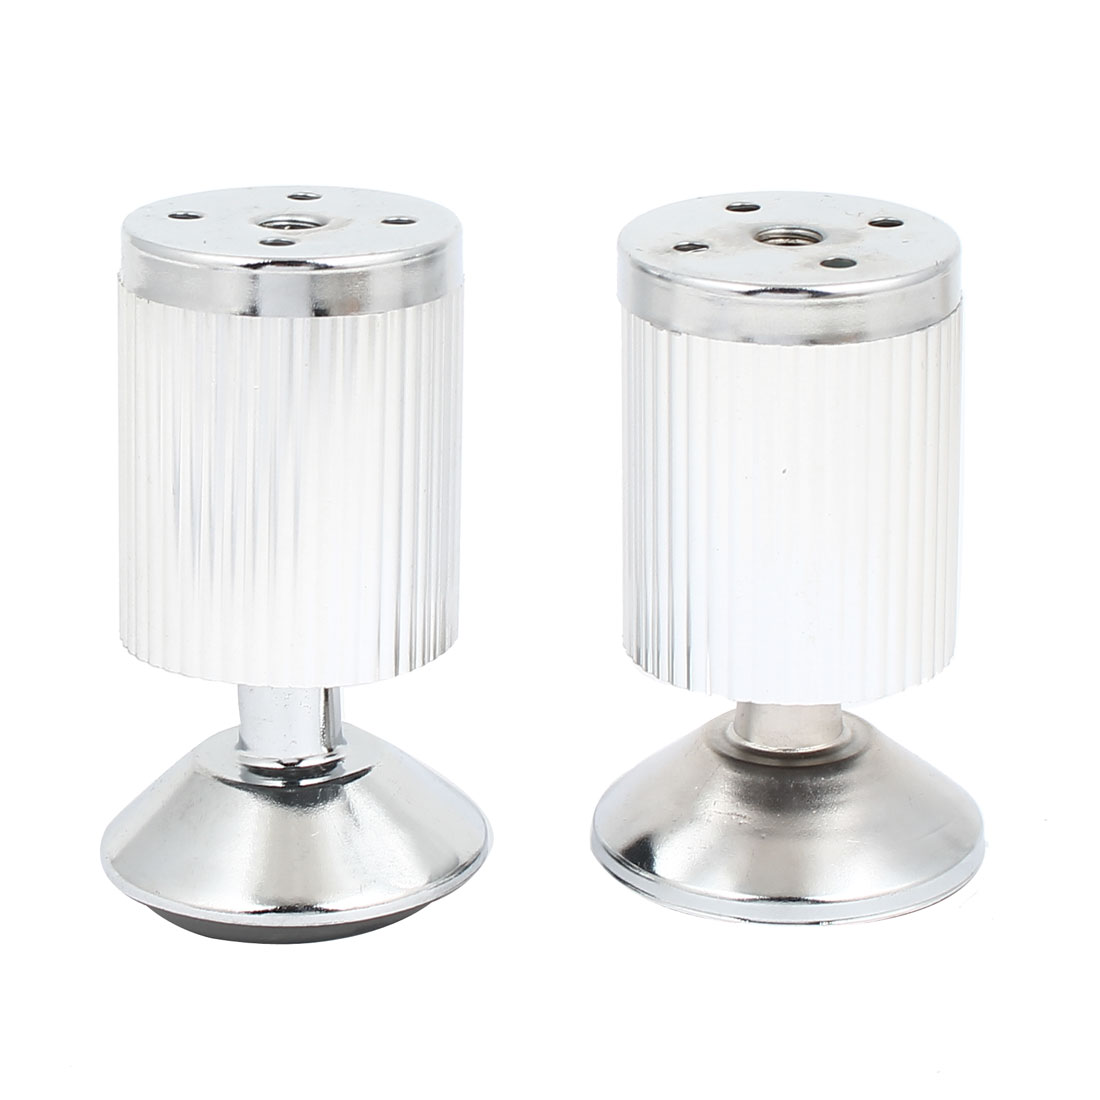 50mm Dia 100mm Height Adjustable Cabinet Sofa Table Leg Feet Round Stand 2pcs